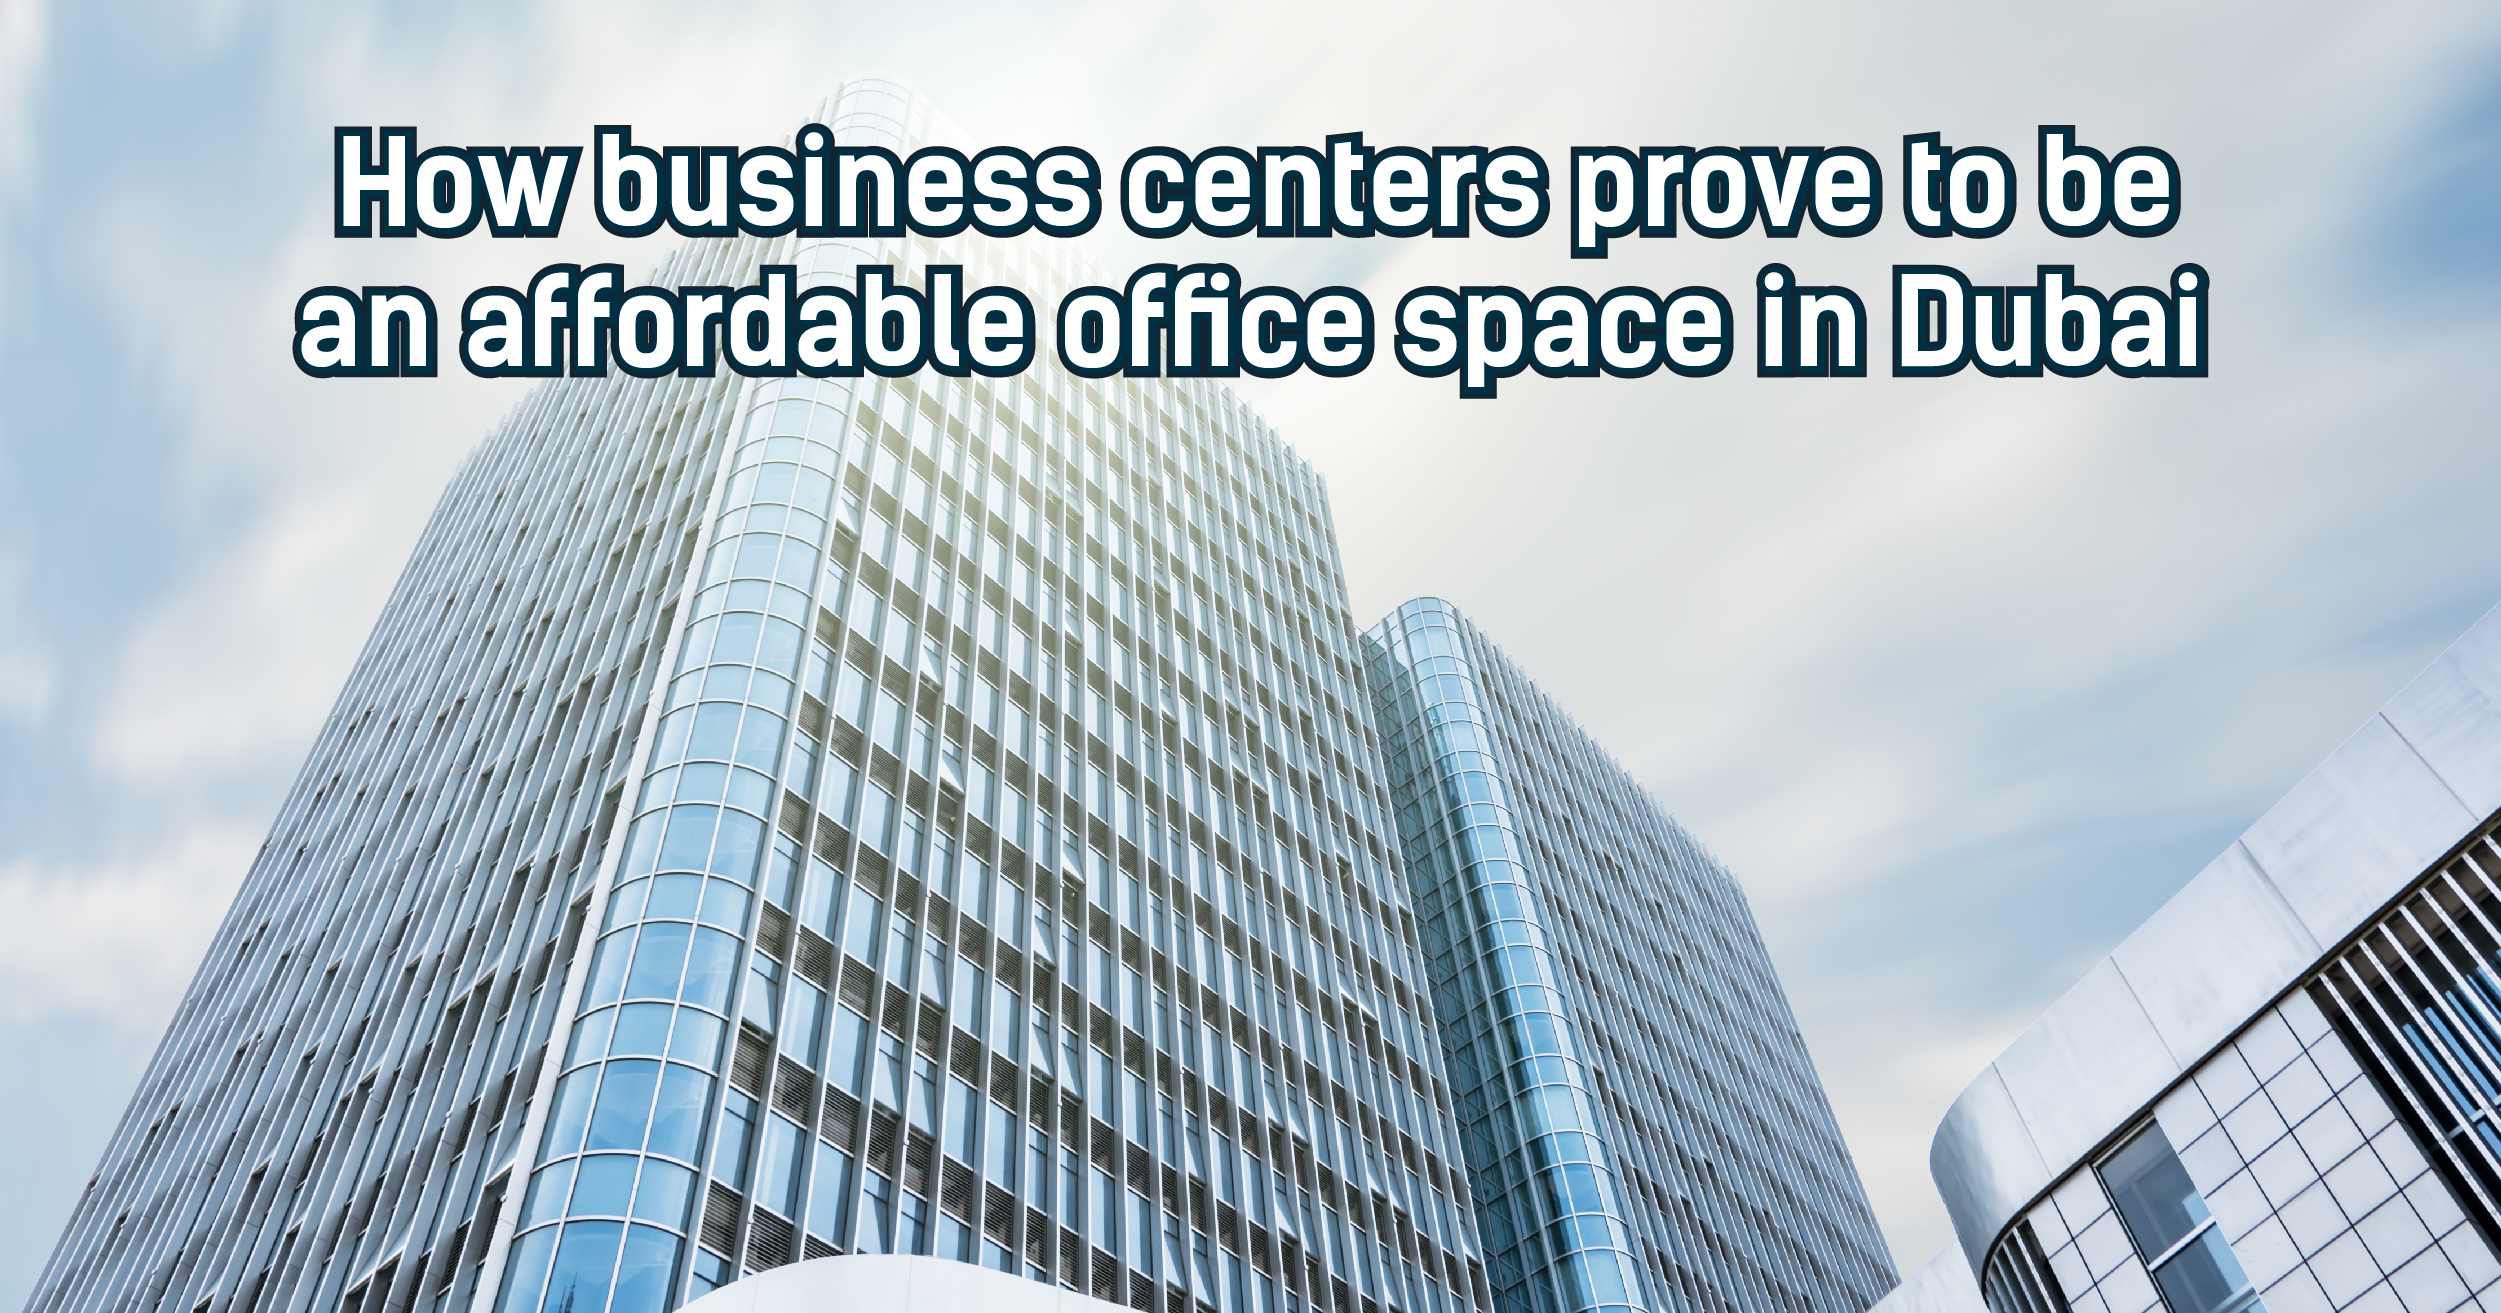 How business centers prove to be an affordable office space in Dubai?